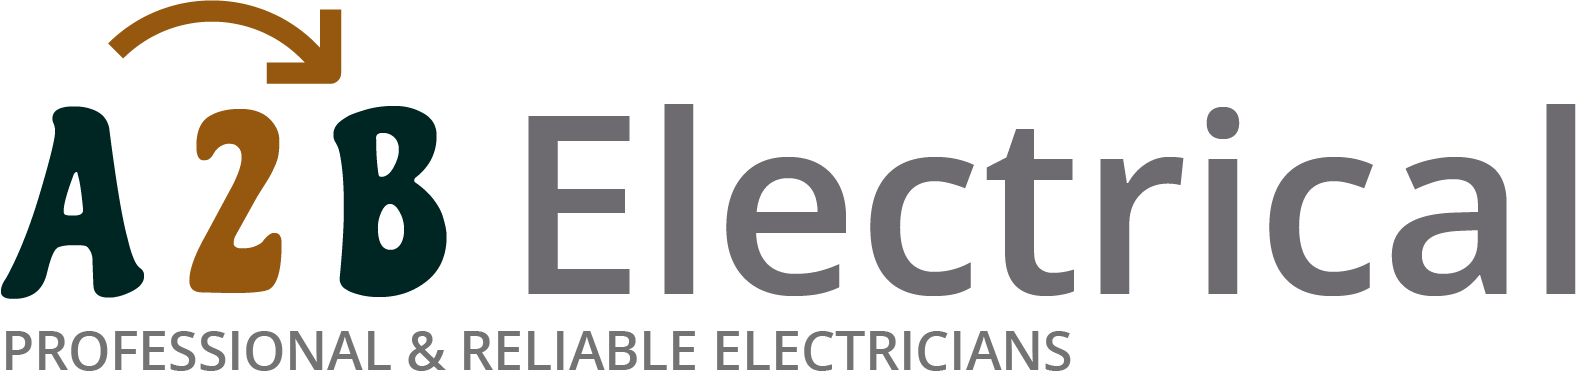 If you have electrical wiring problems in Dollis Hill, we can provide an electrician to have a look for you.